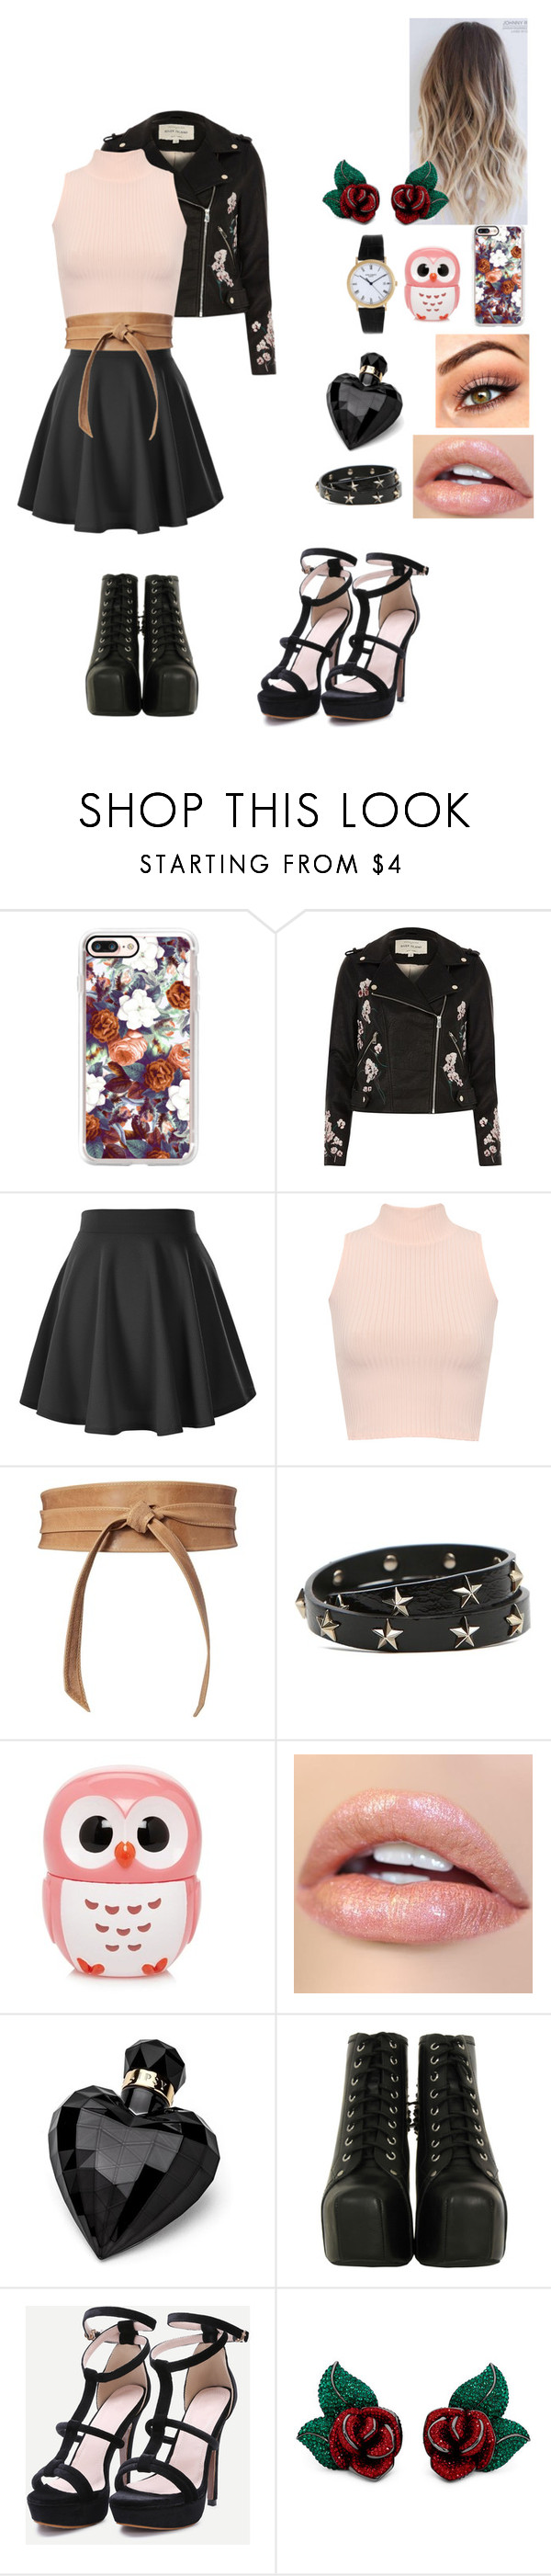 """""""girl of city"""" by krystal-av on Polyvore featuring Casetify, River Island, WearAll, Brave, RED Valentino, Forever 21, Patek Philippe, Lipsy and Jeffrey Campbell"""